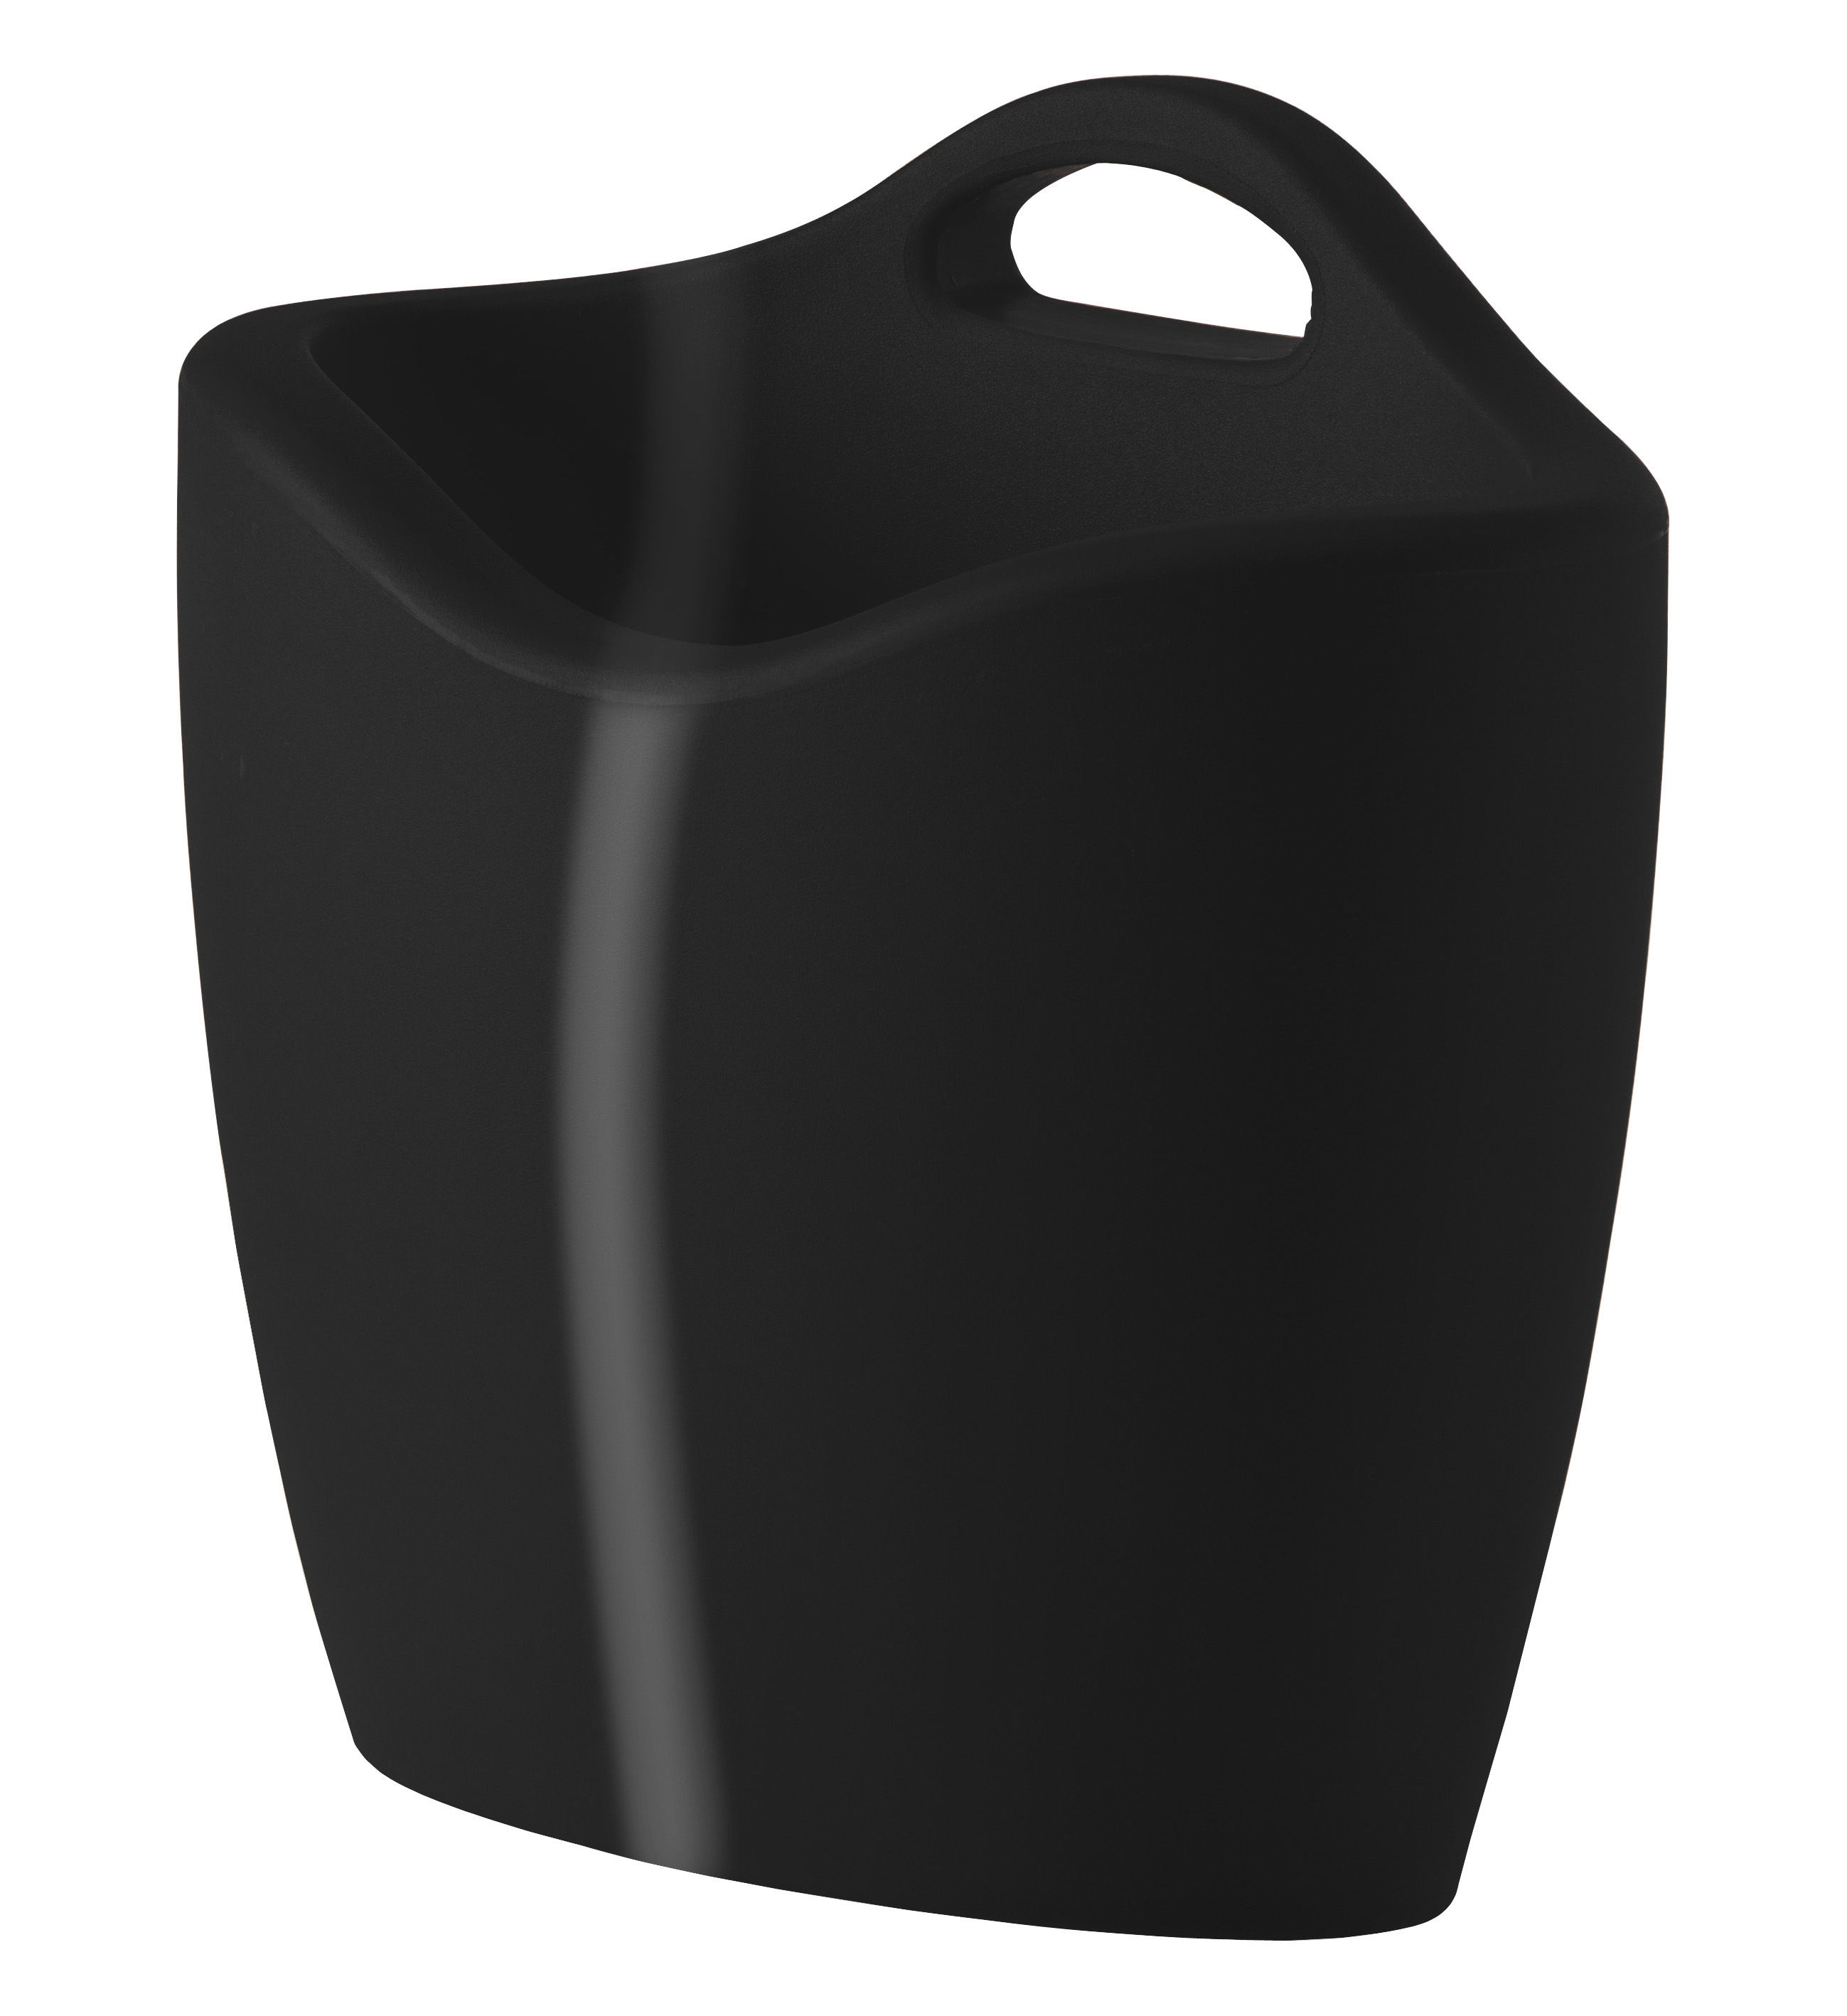 Decoration - Boxes & Baskets - Mag Magazine holder - Lacquered version by Slide - Lacquered black -